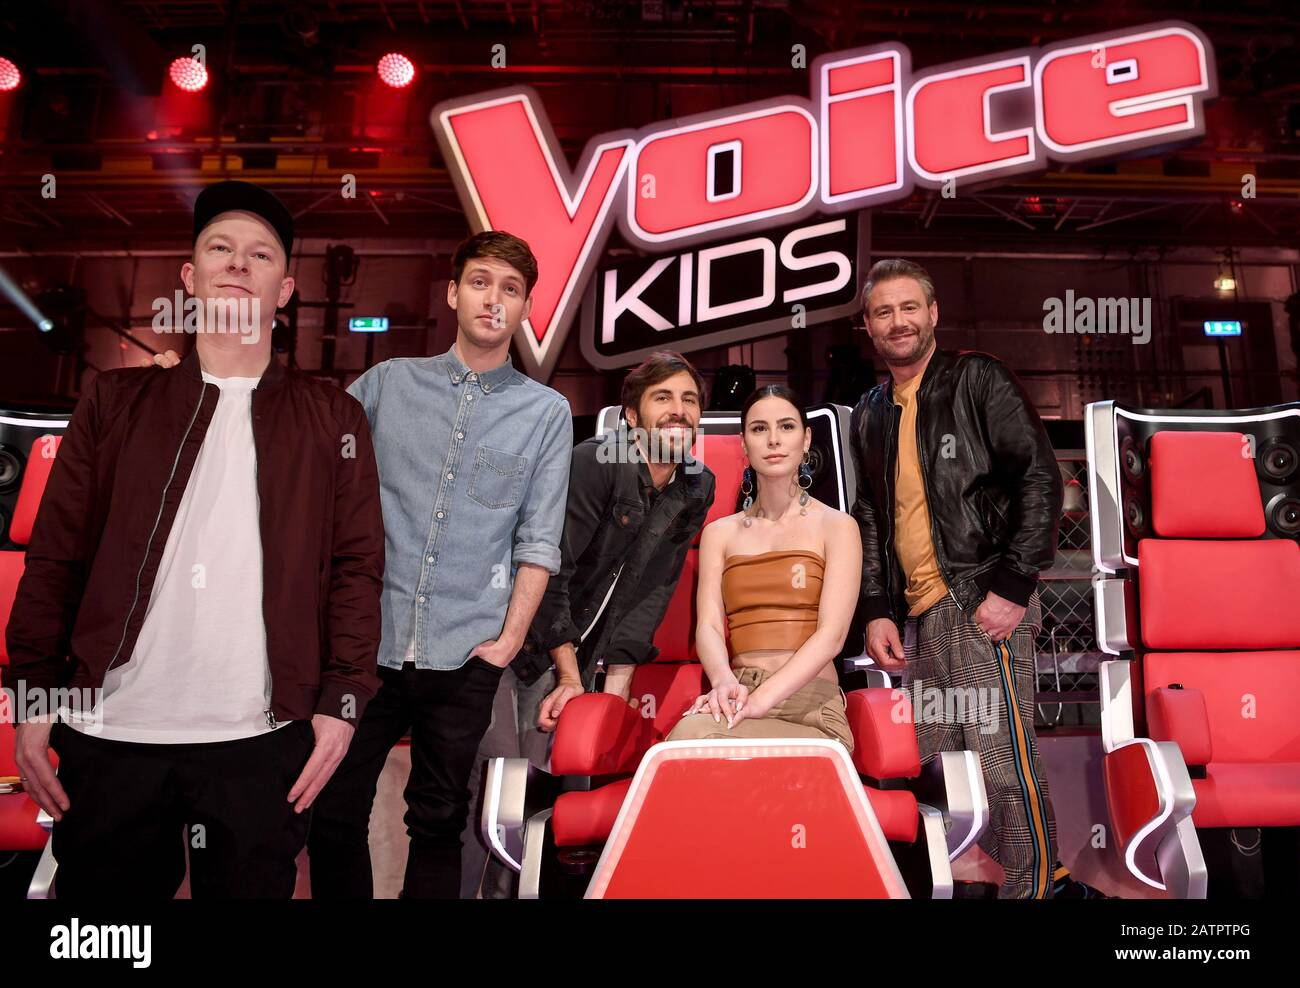 Berlin Germany 04th Feb 2020 The Coaches Florian Sump And Lukas Nimscheck Of The Band Deine Freunde Lena Meyer Landrut Max Giesinger And Sasha L R On The Sidelines Of The Show The Voice